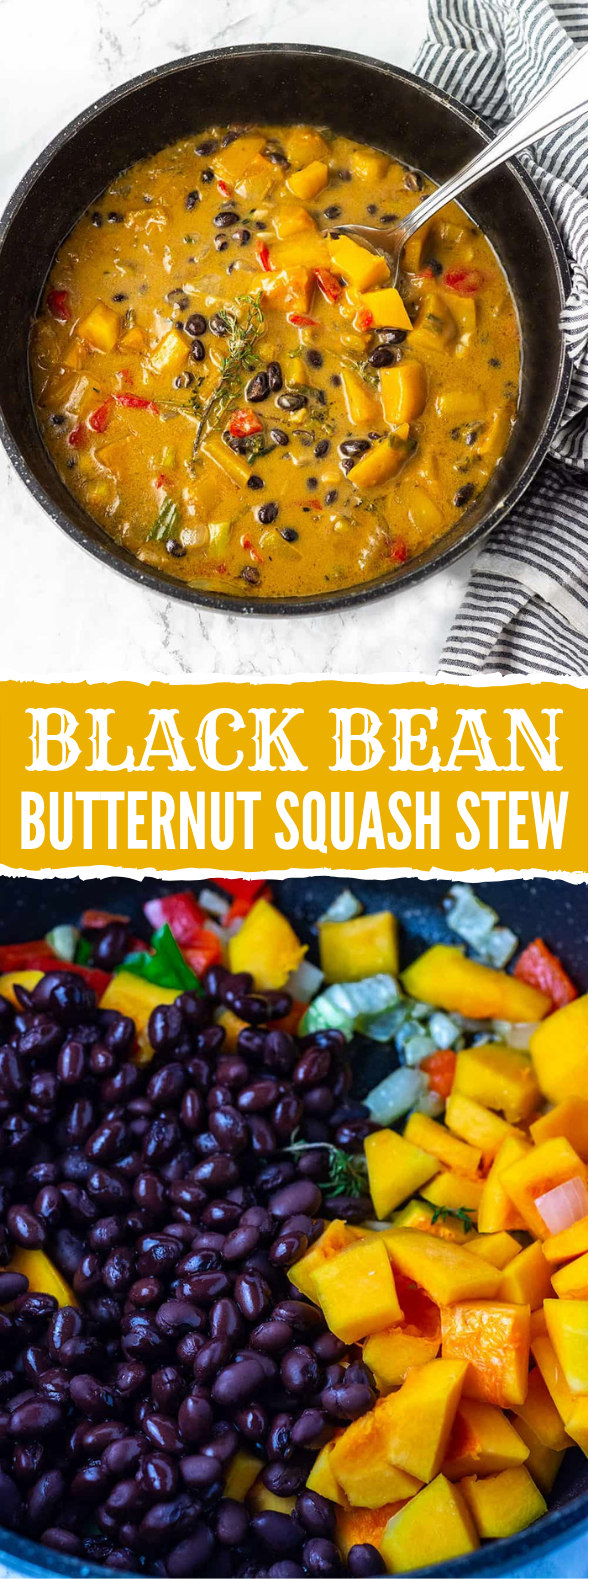 Black Bean Butternut Squash Stew #vegan #healthy